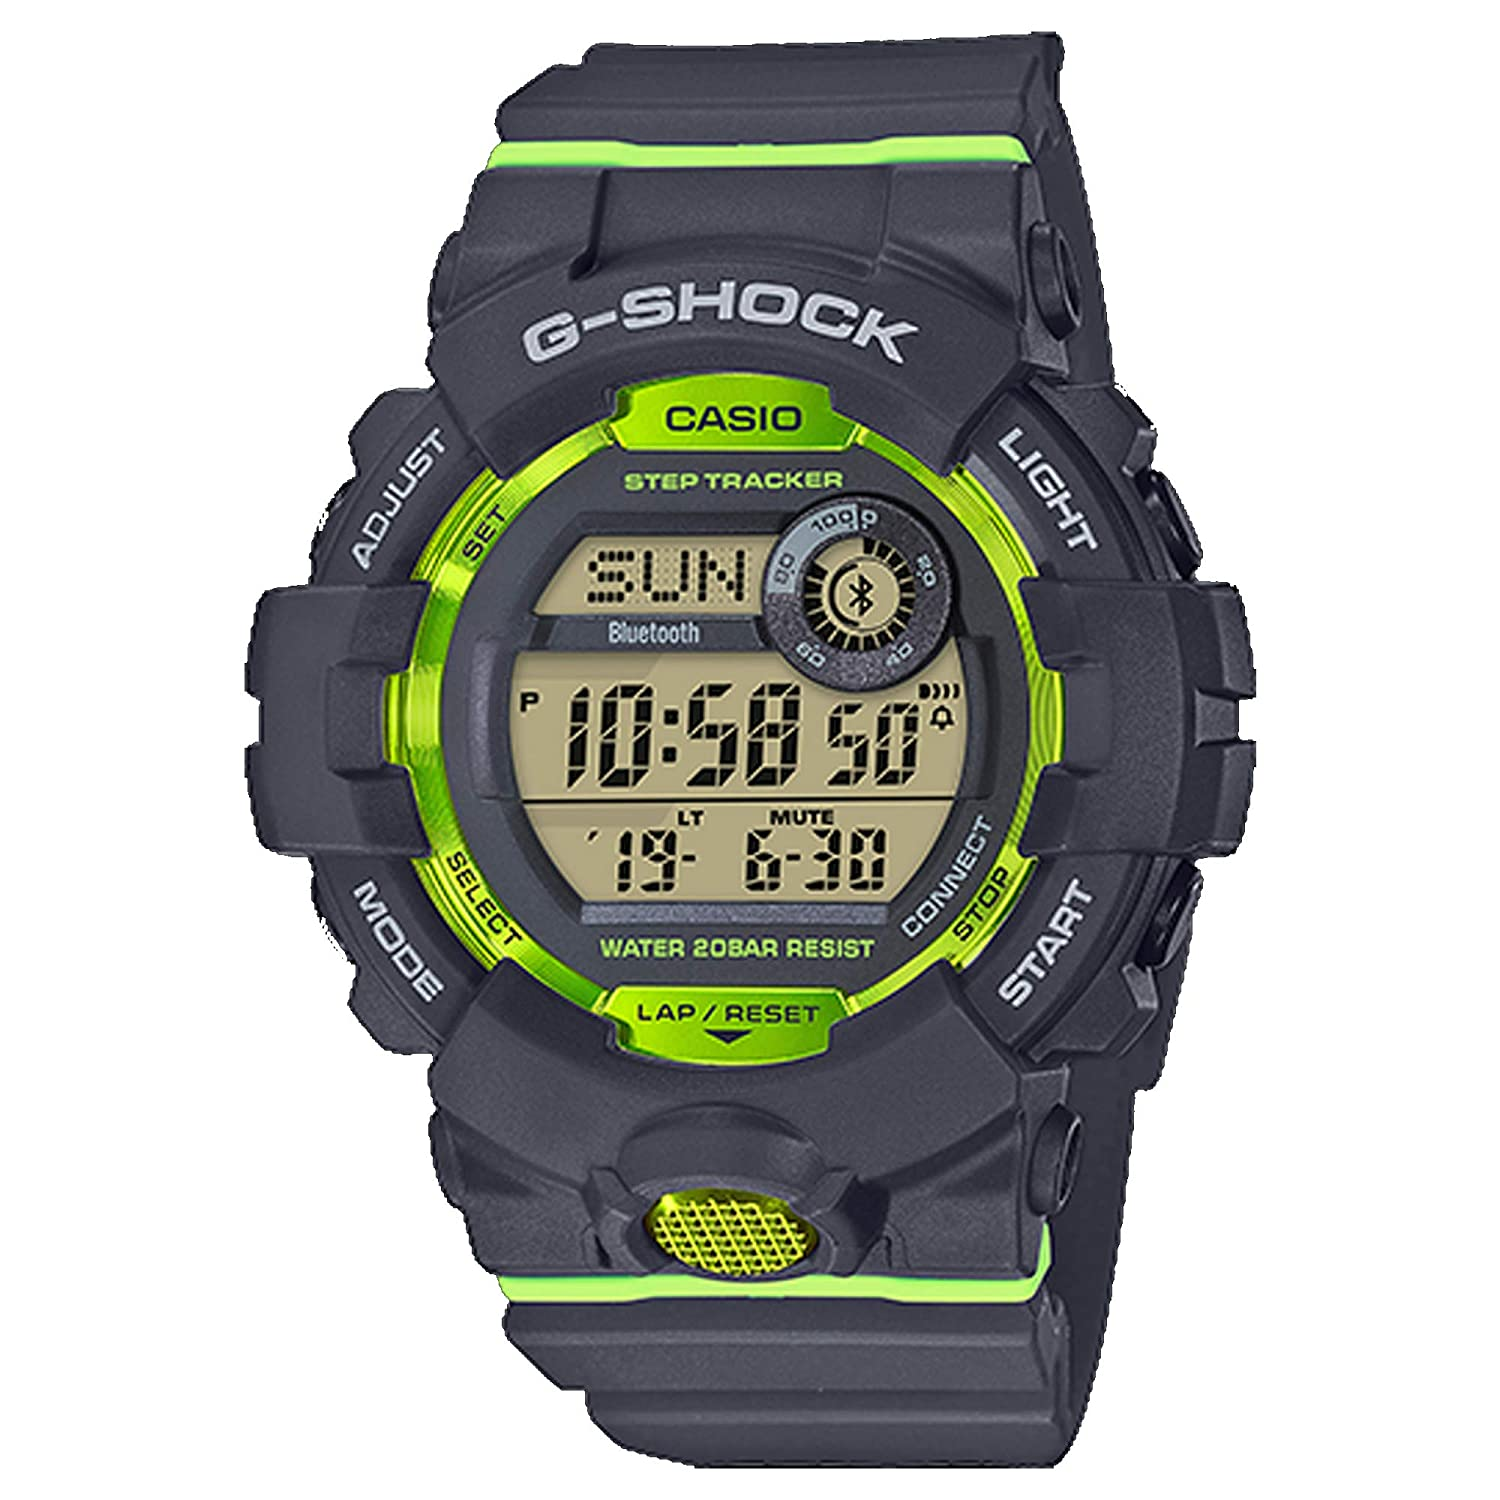 Amazon.com: G-Shock Mens GBD800-1 Bluetooth G-Squad Digital Watch, Black/Red (BLKRED/1), One Size: Watches